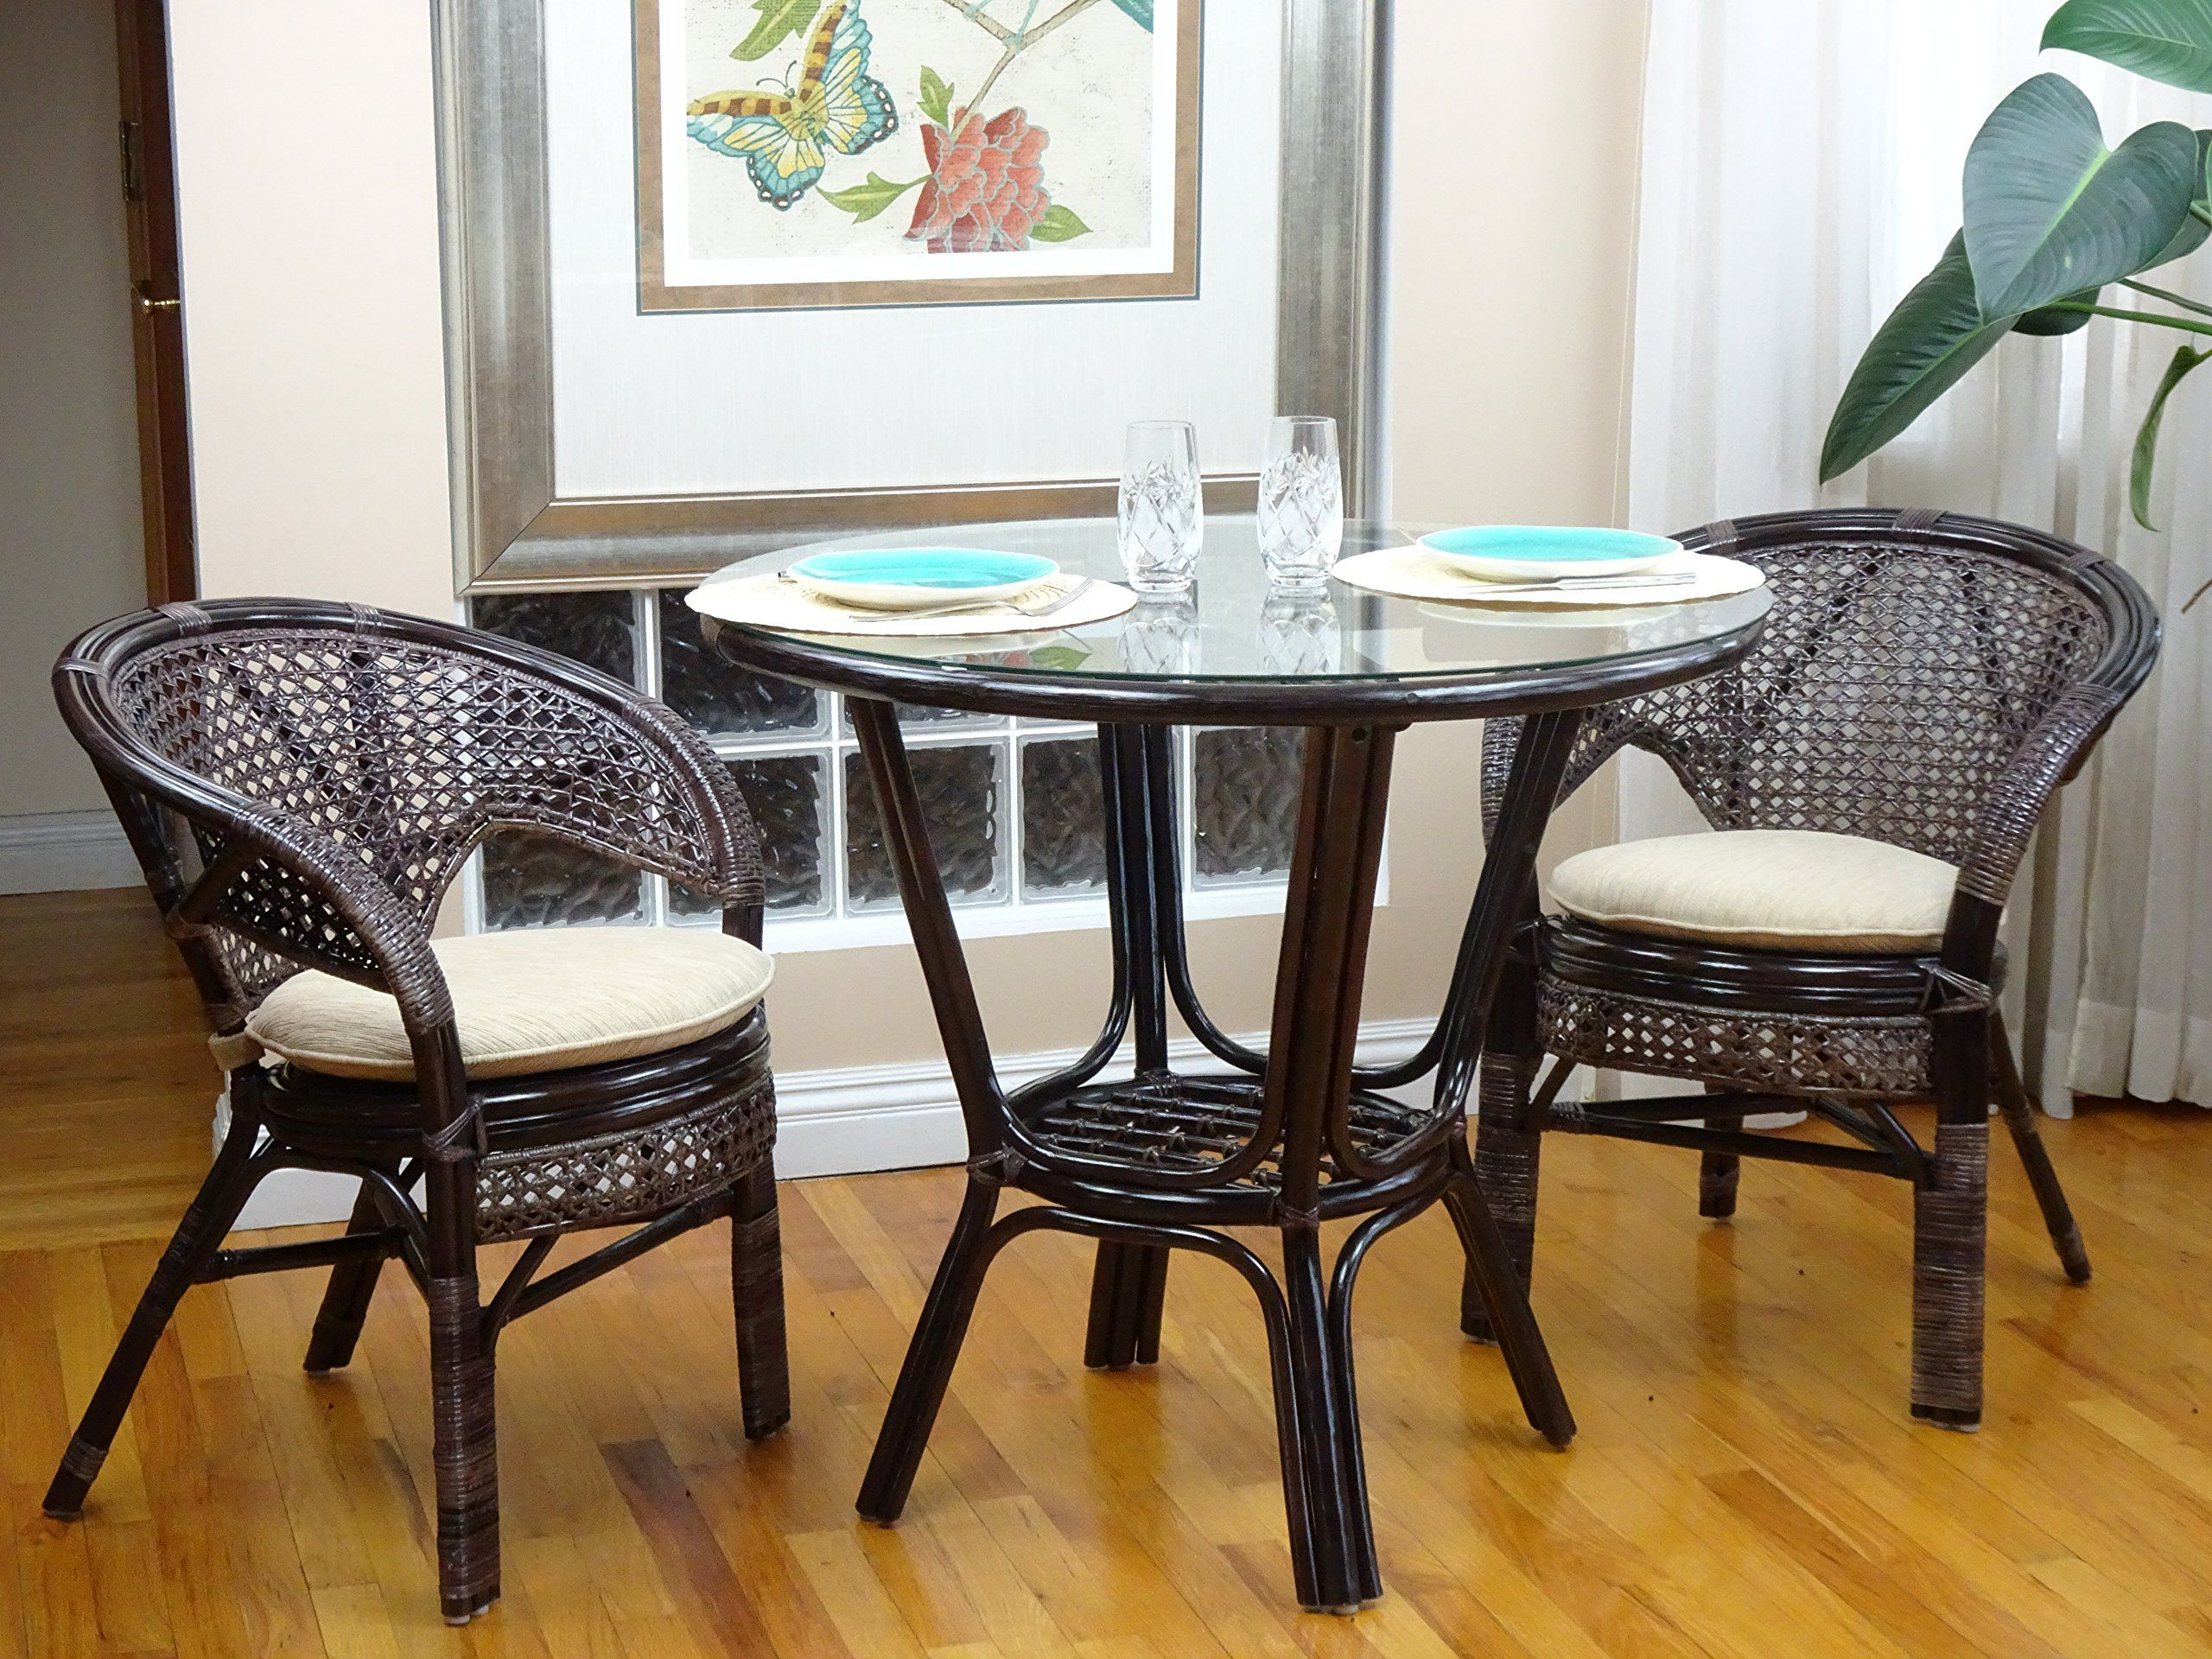 3 Pcs Pelangi Rattan Wicker Dining Set Round Table Glass Top With Favorite Alamo Transitional 4 Seating Double Drop Leaf Round Casual Dining Tables (View 1 of 26)